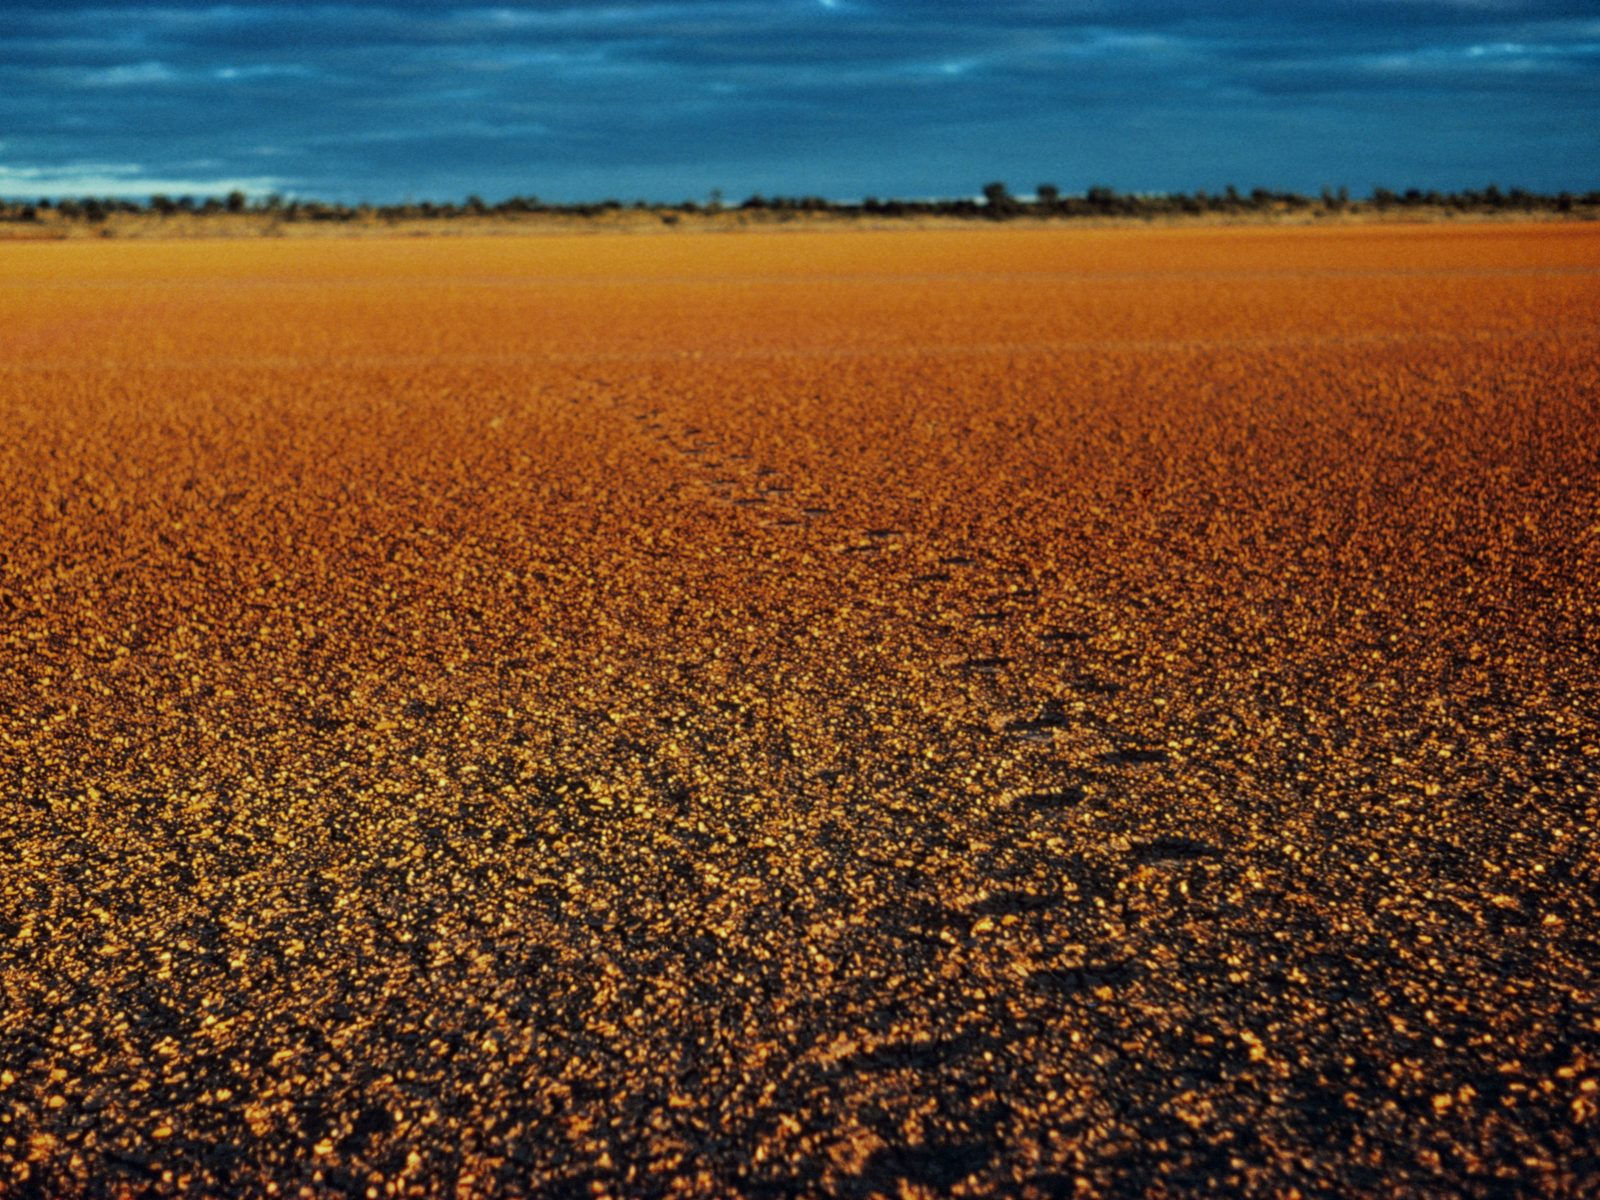 Cracked red dirt claypan, outback NSW Australia